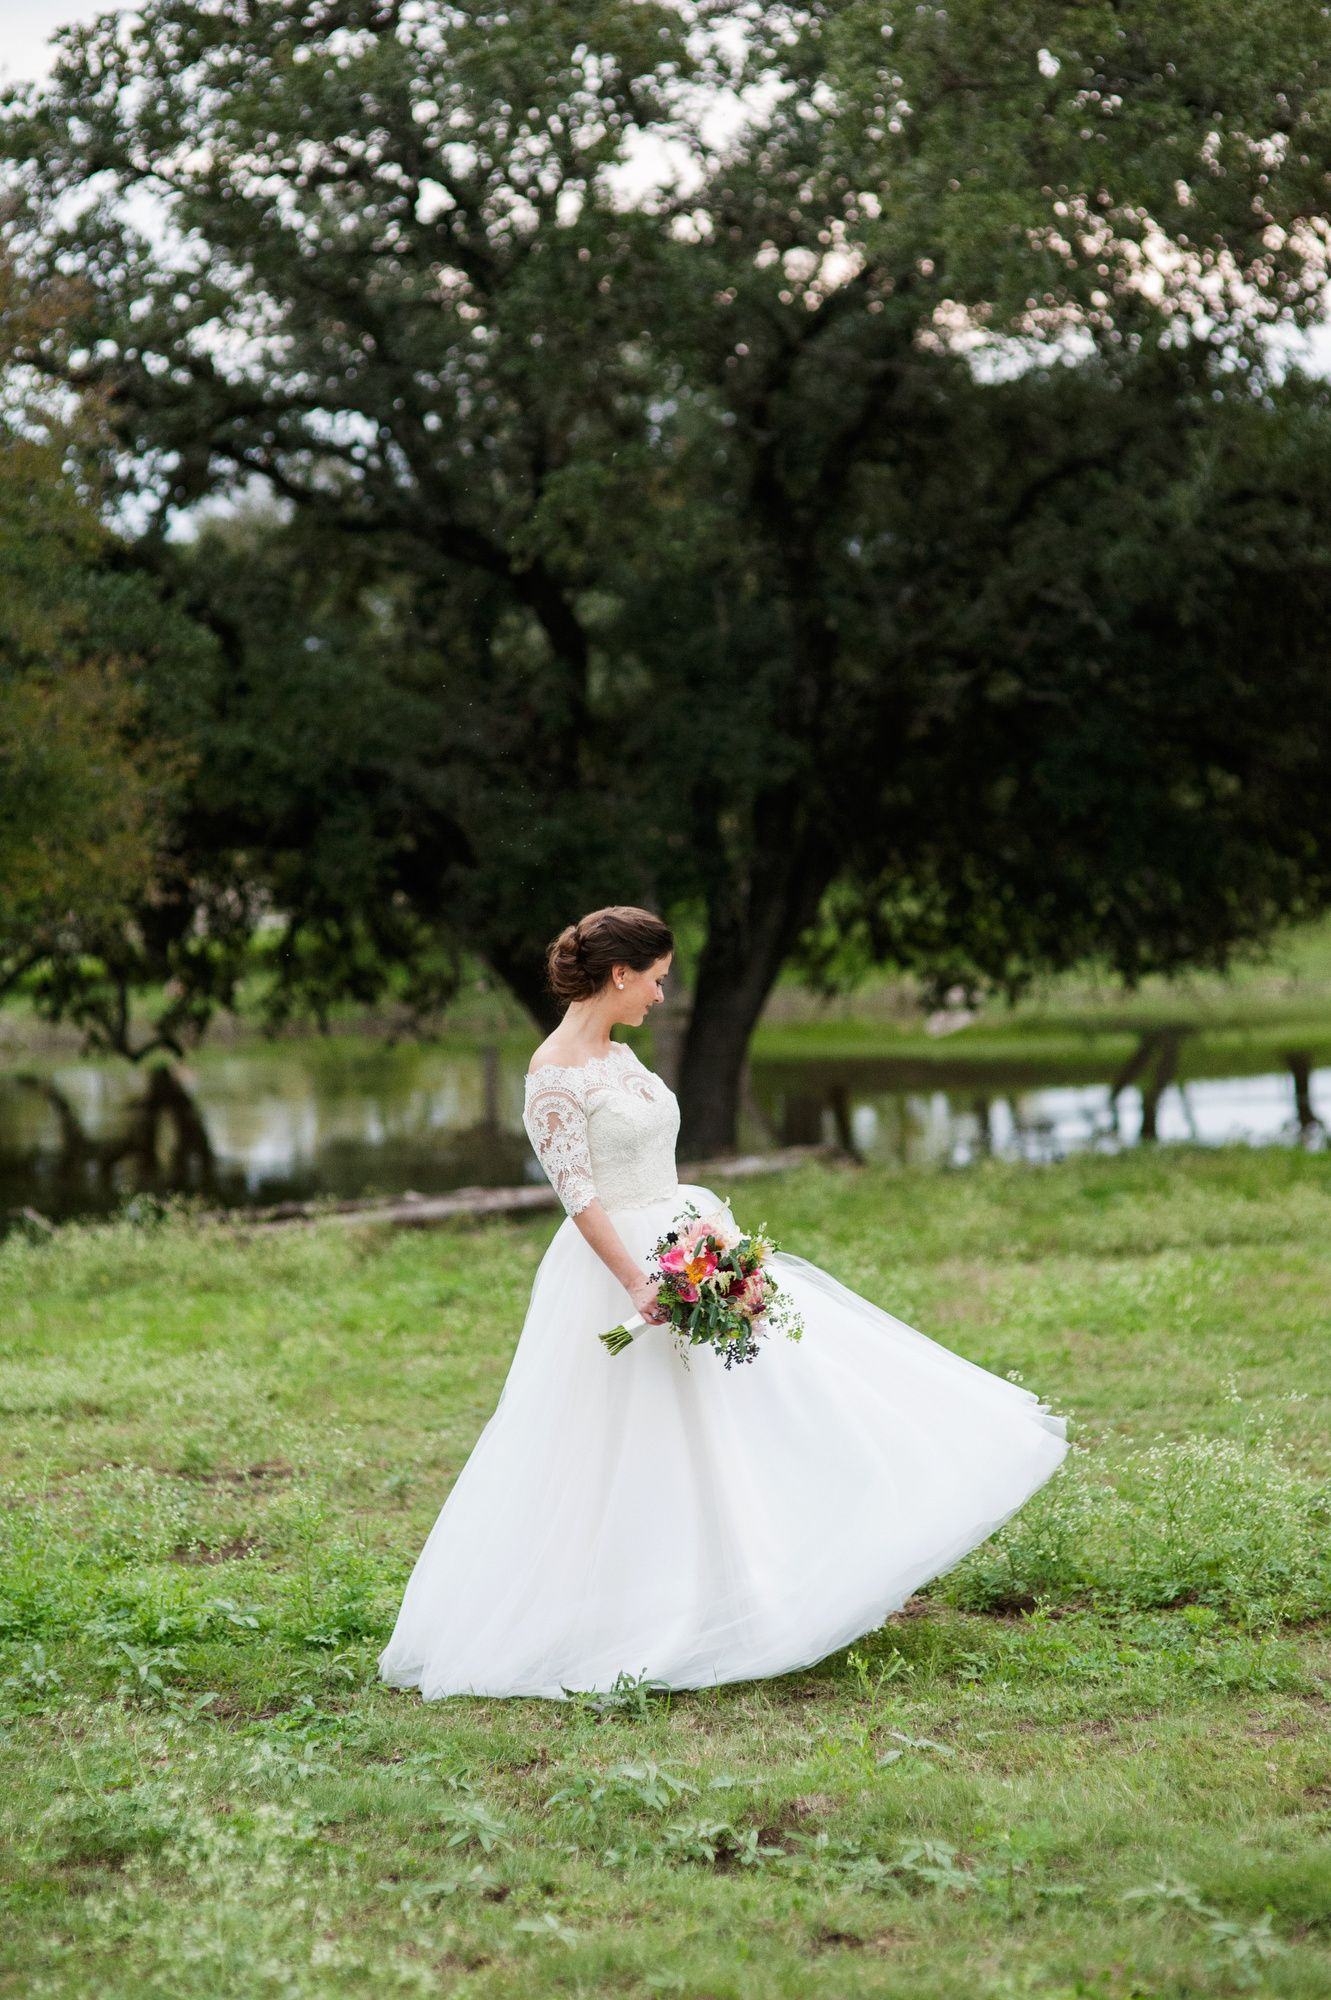 Fall outdoor wedding dresses  Vintage Outdoor Wedding at the Wild Onion Ranch  Vintage outdoor